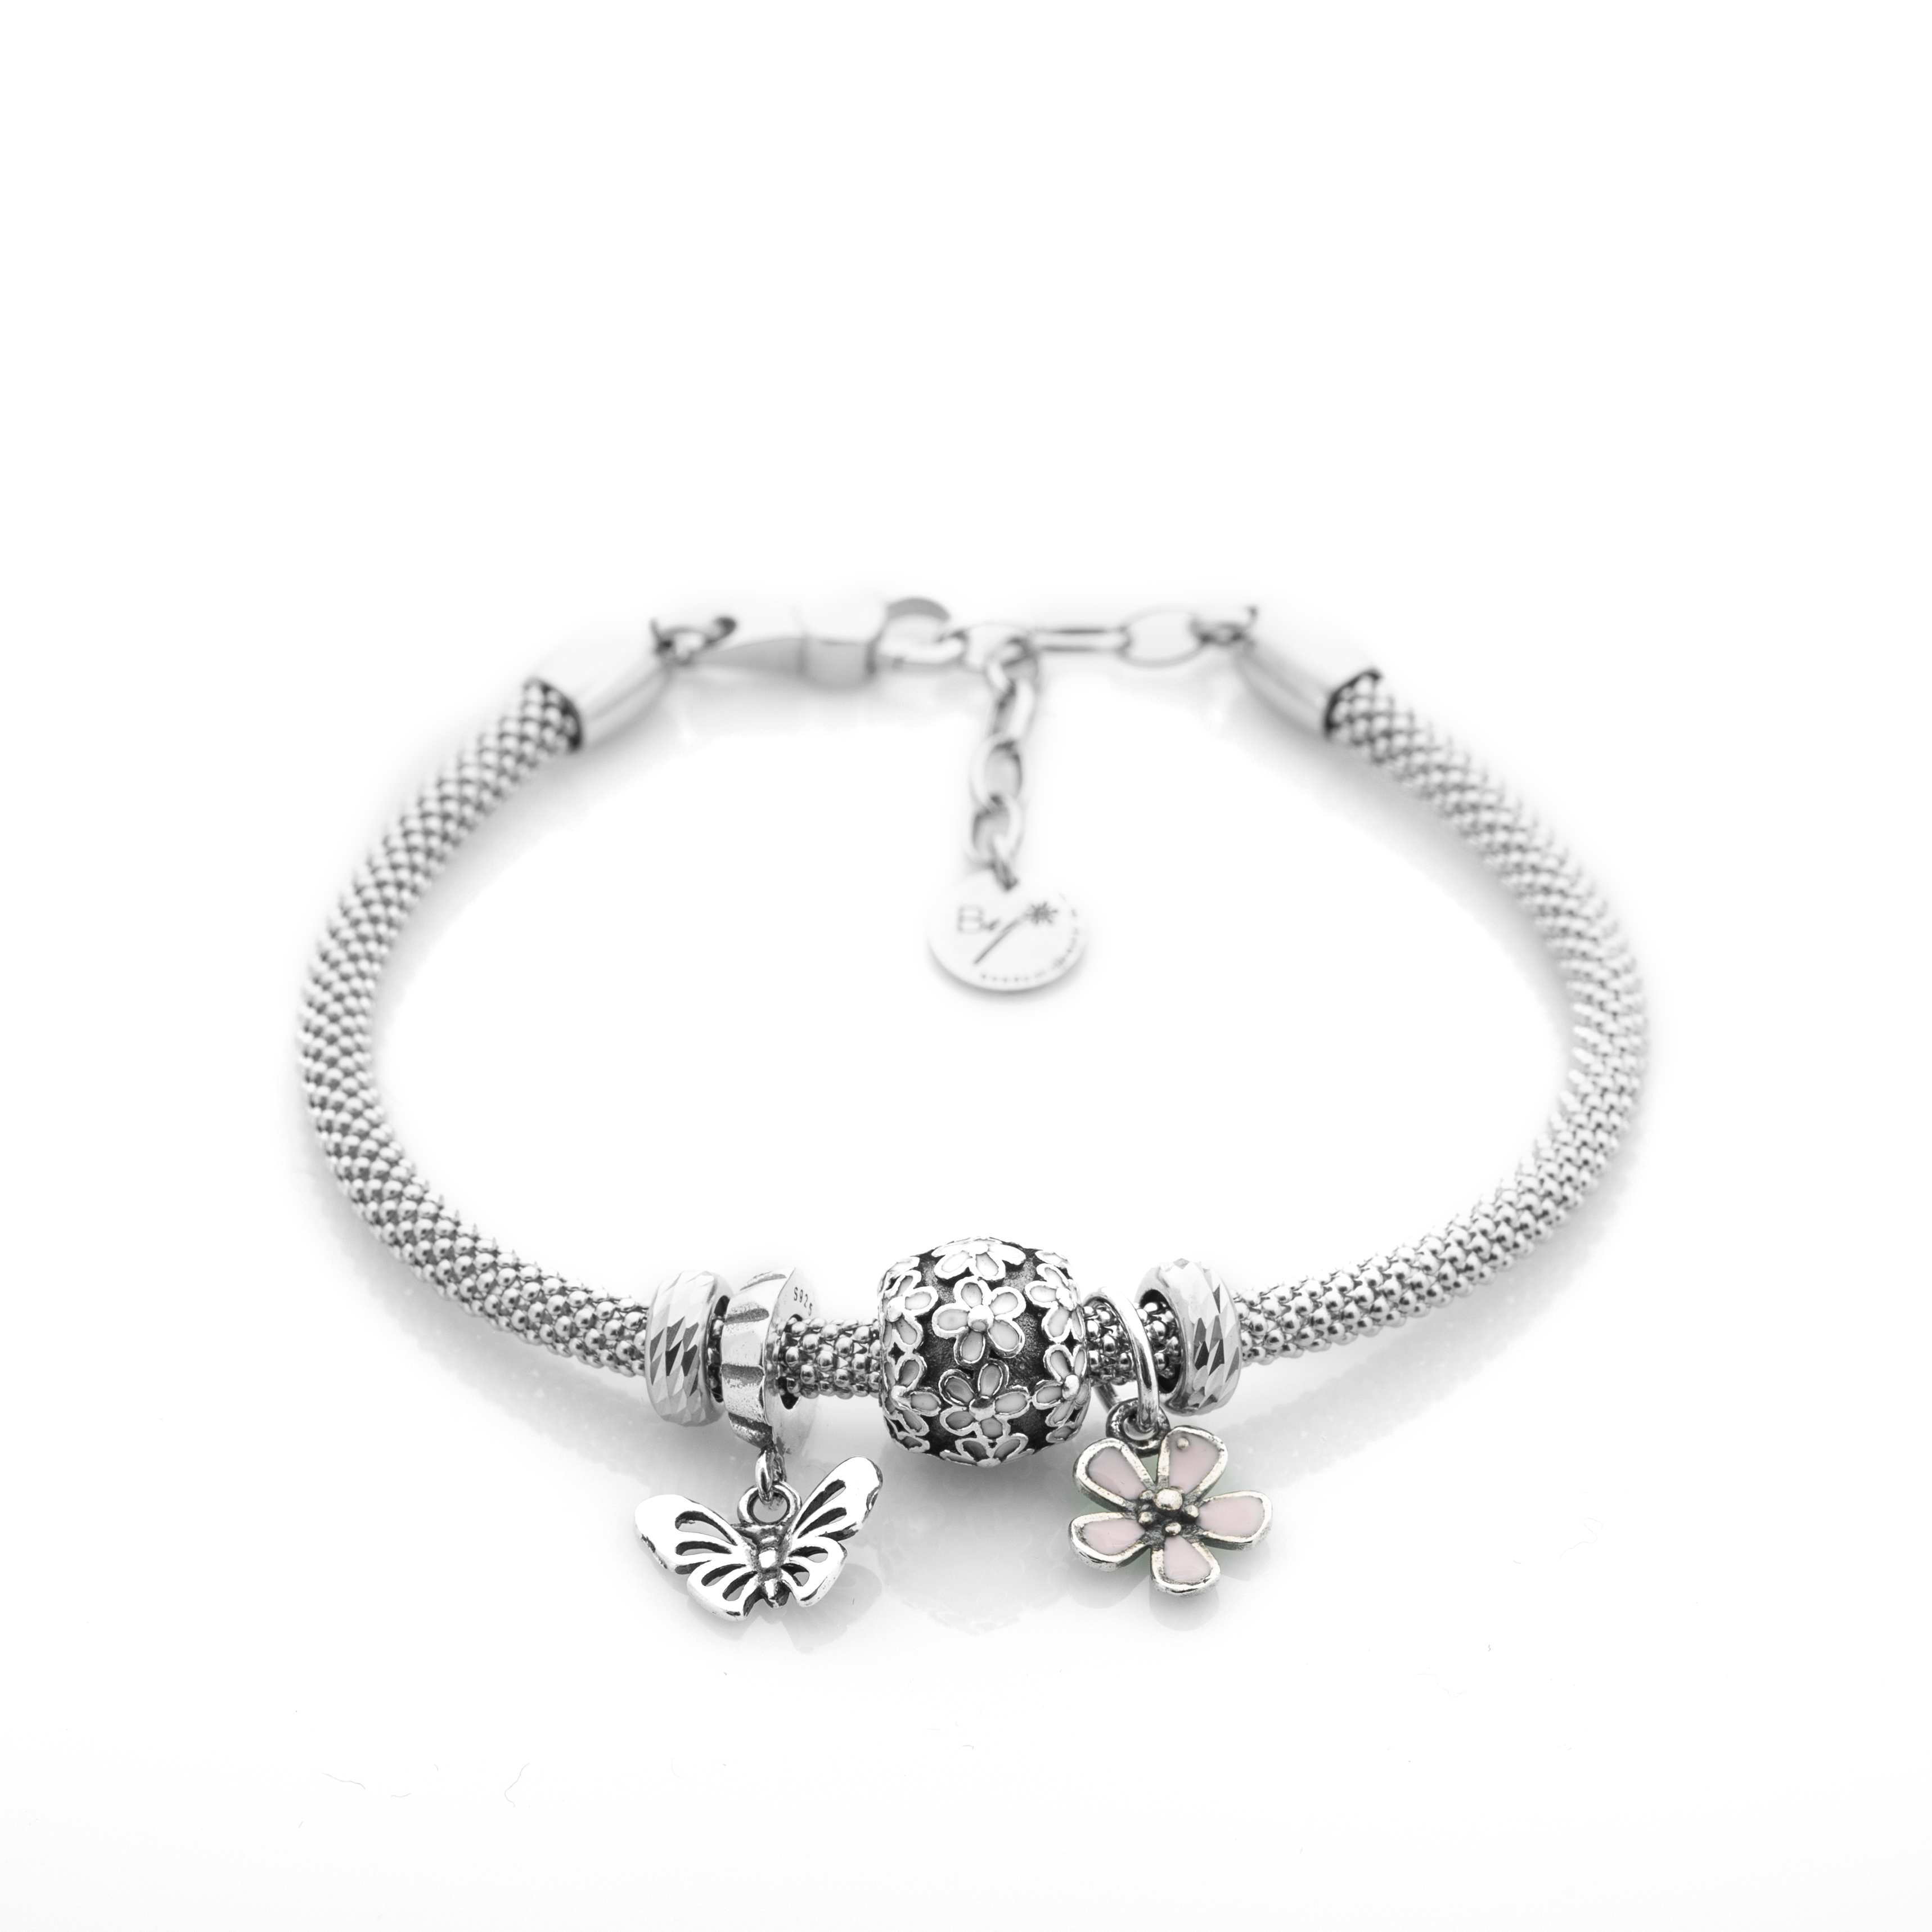 charmed metallic charm women product kate silver jewelry in bracelets normal bracelet york lyst new bangles gallery s spade